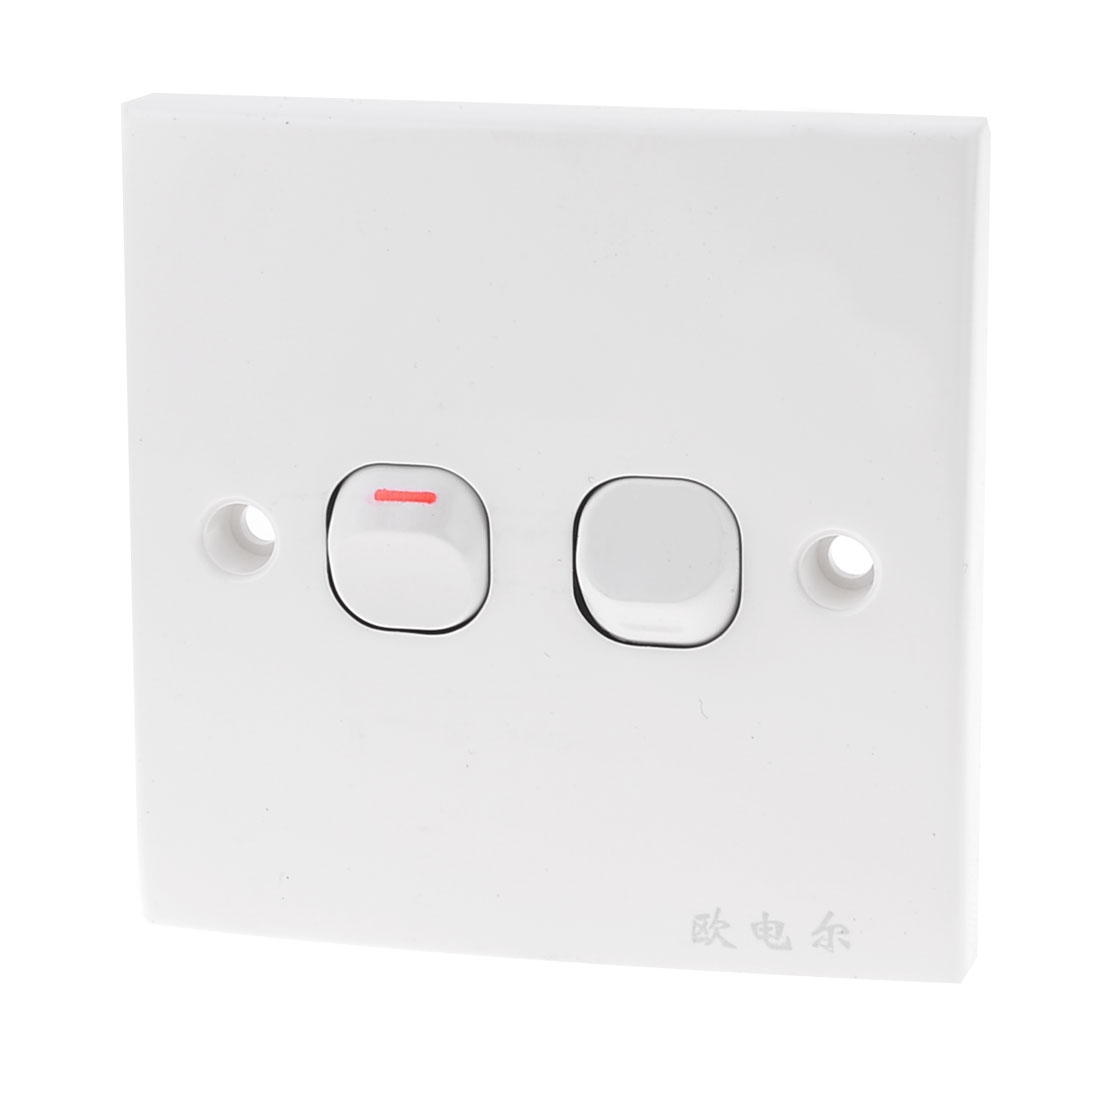 White Square Plastic Housing 2 Gang On/Off Wall Switch Plate 10A 250V